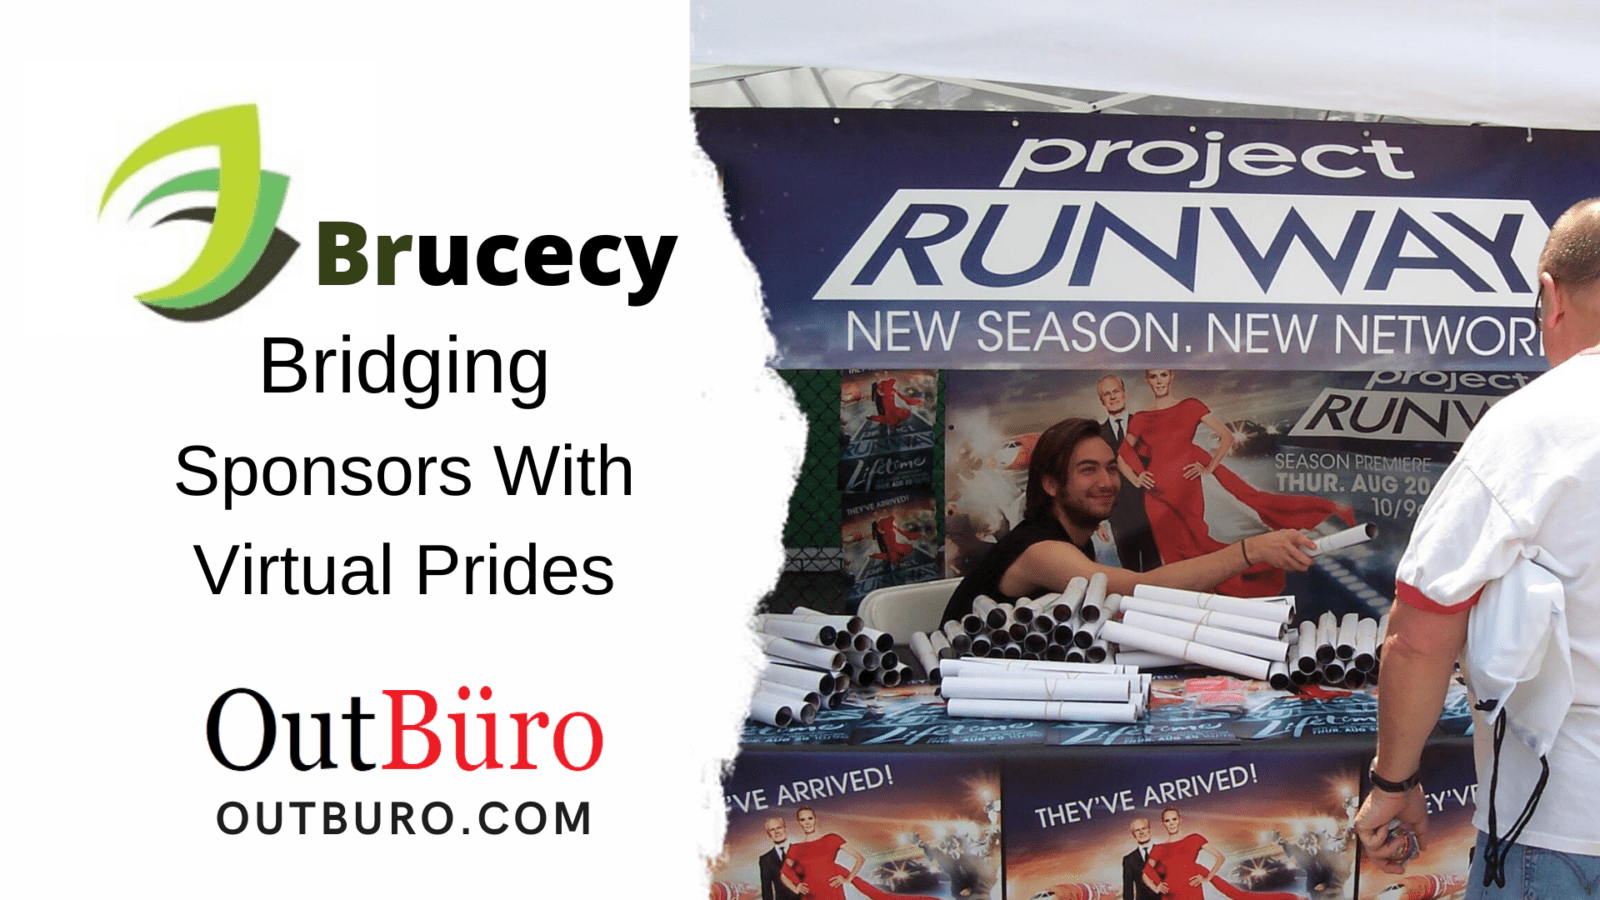 Brucecy Marketing Group - Tom Legan - Global Pride 2020 - LGBT Entrepreneur Gay Business Owner Professional Brand Activation Customer Connection - OutBuro LGBTQ Communit